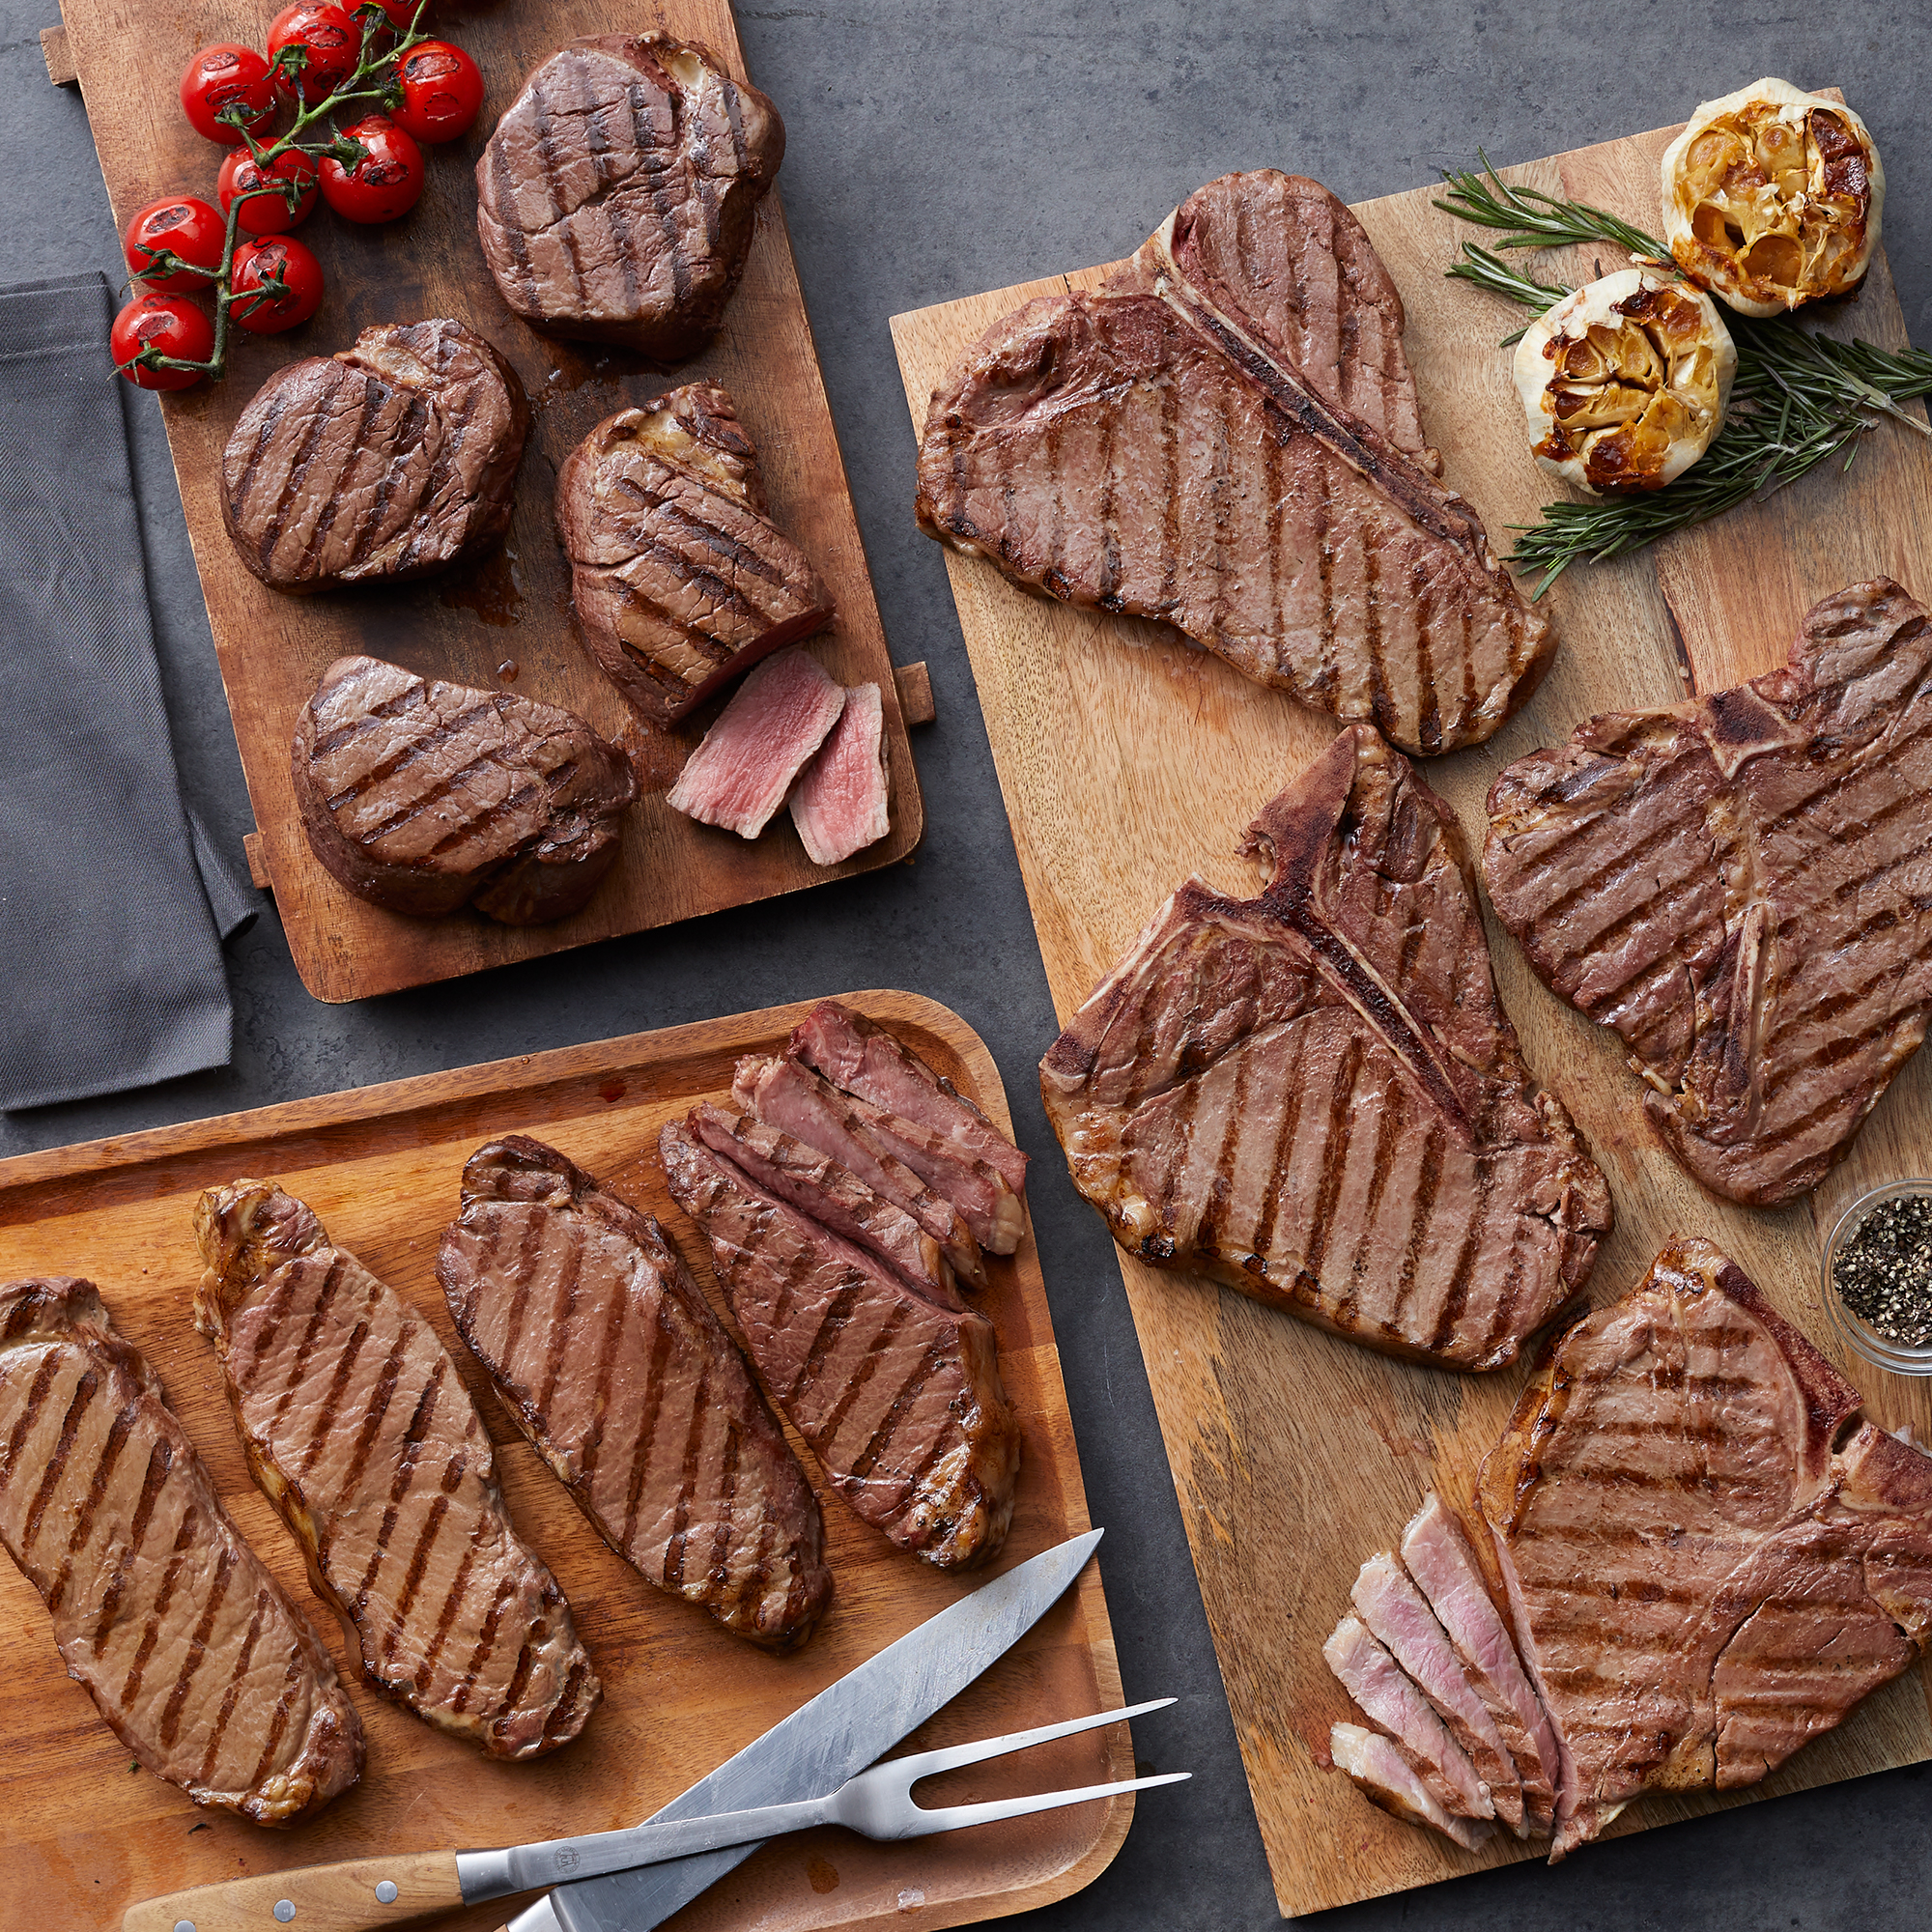 Grand Assortment includes filets, New York Strip Steaks, and Porterhouse steaks